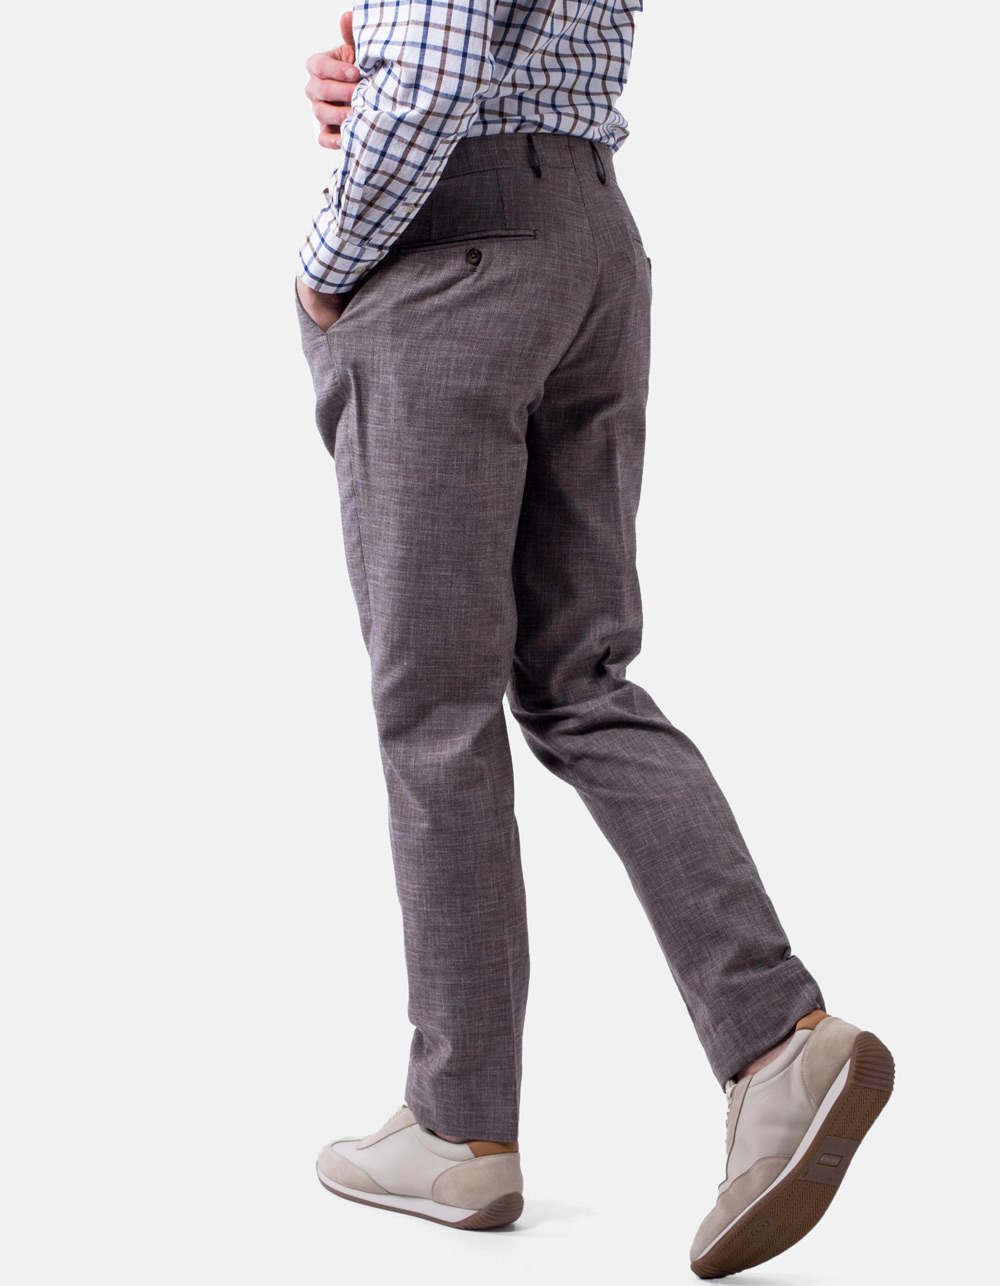 French pocket brown trousers - Backside